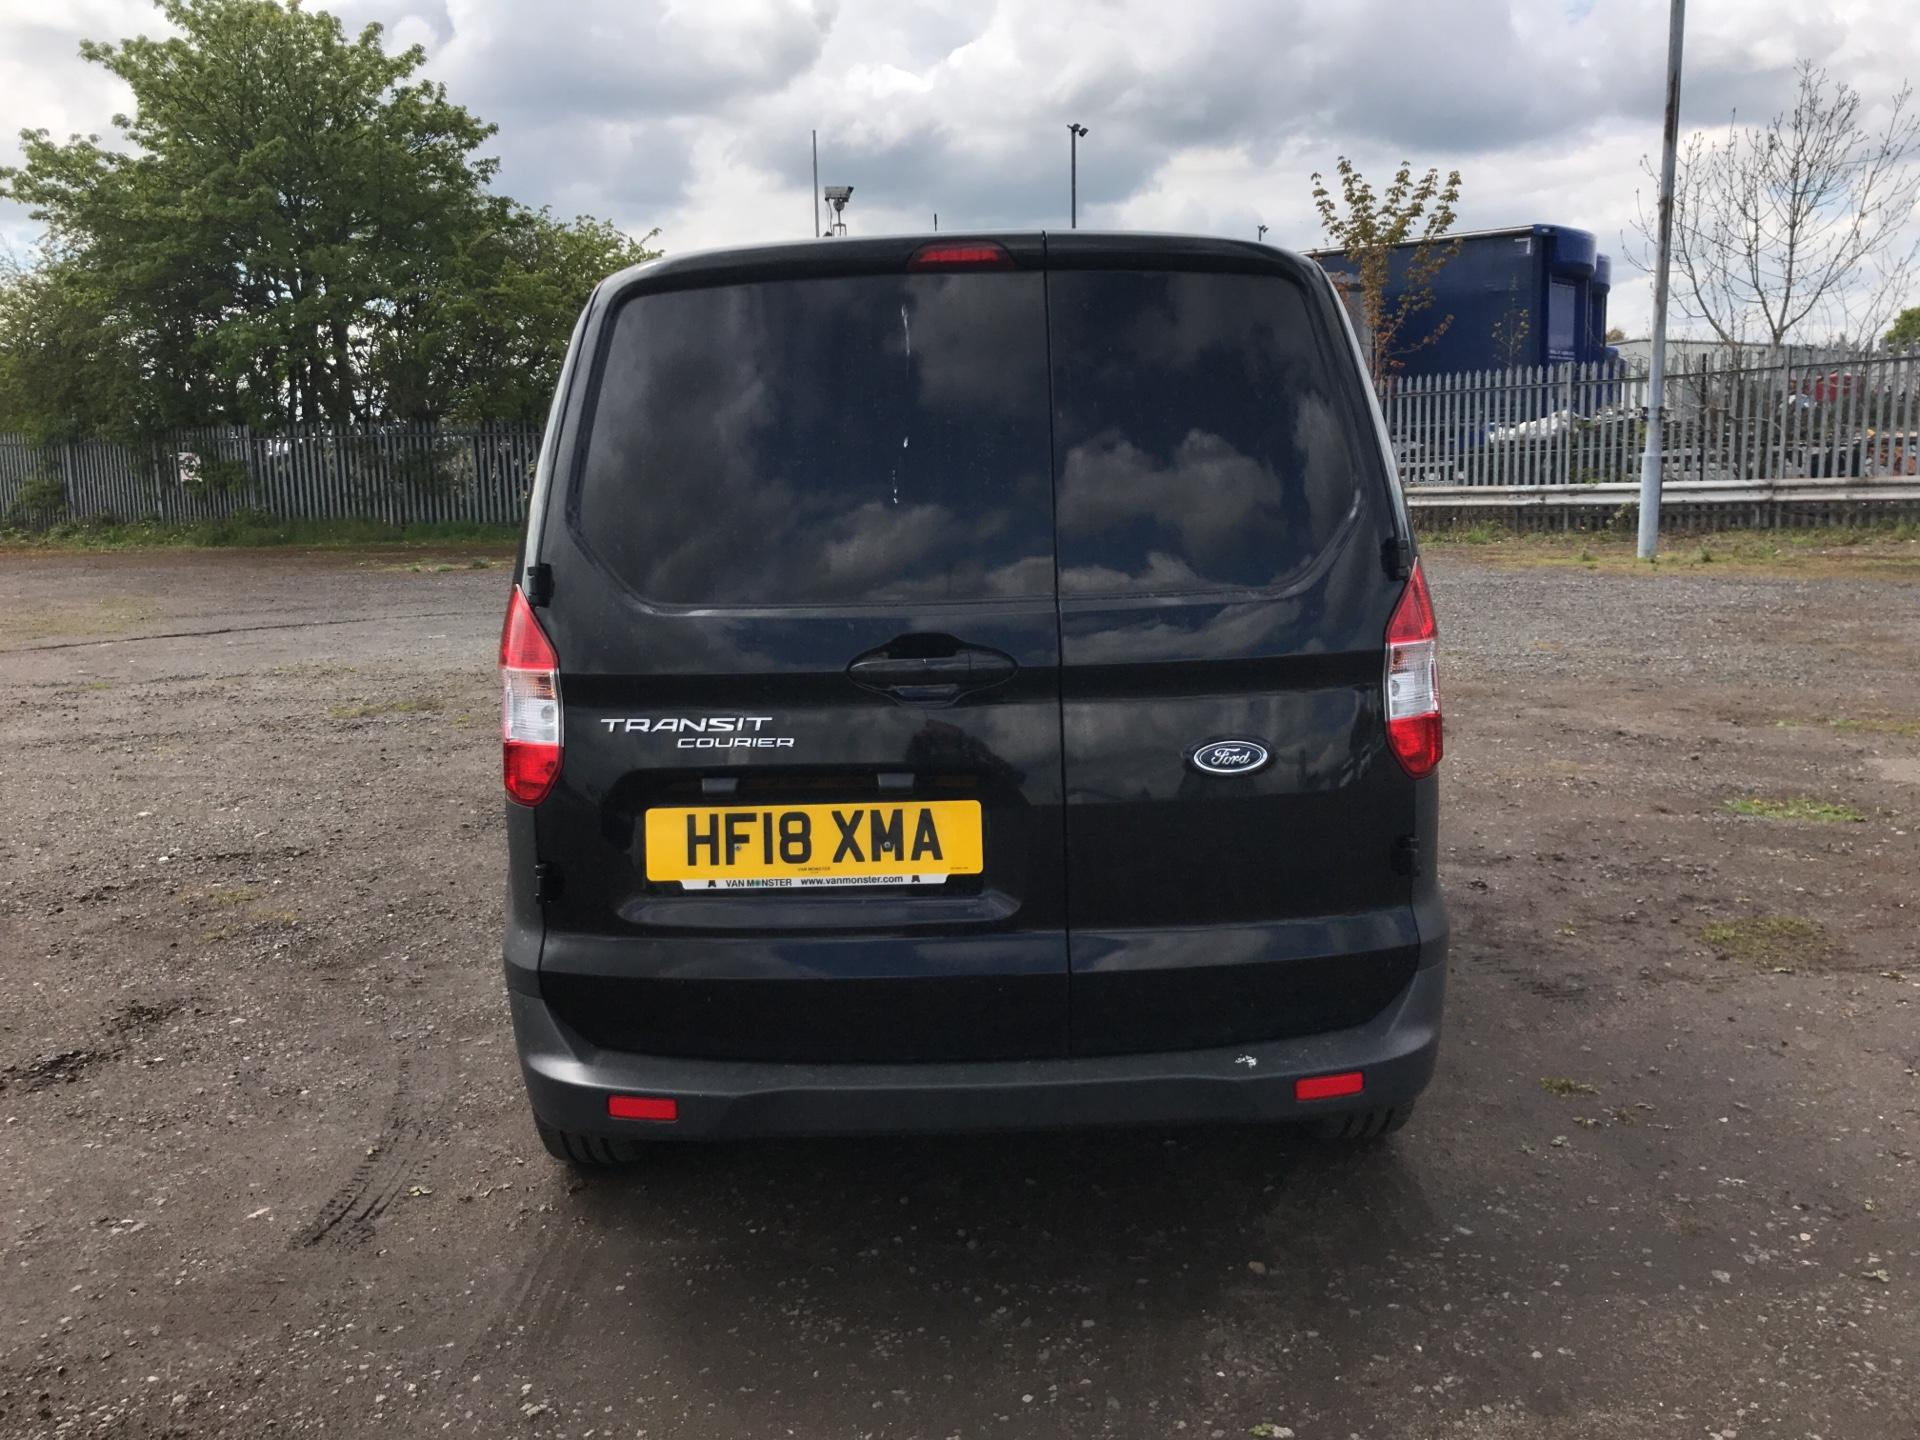 2018 Ford Transit Courier DIESEL 1.5 TDCI 95 TREND EURO 6 (HF18XMA) Image 4